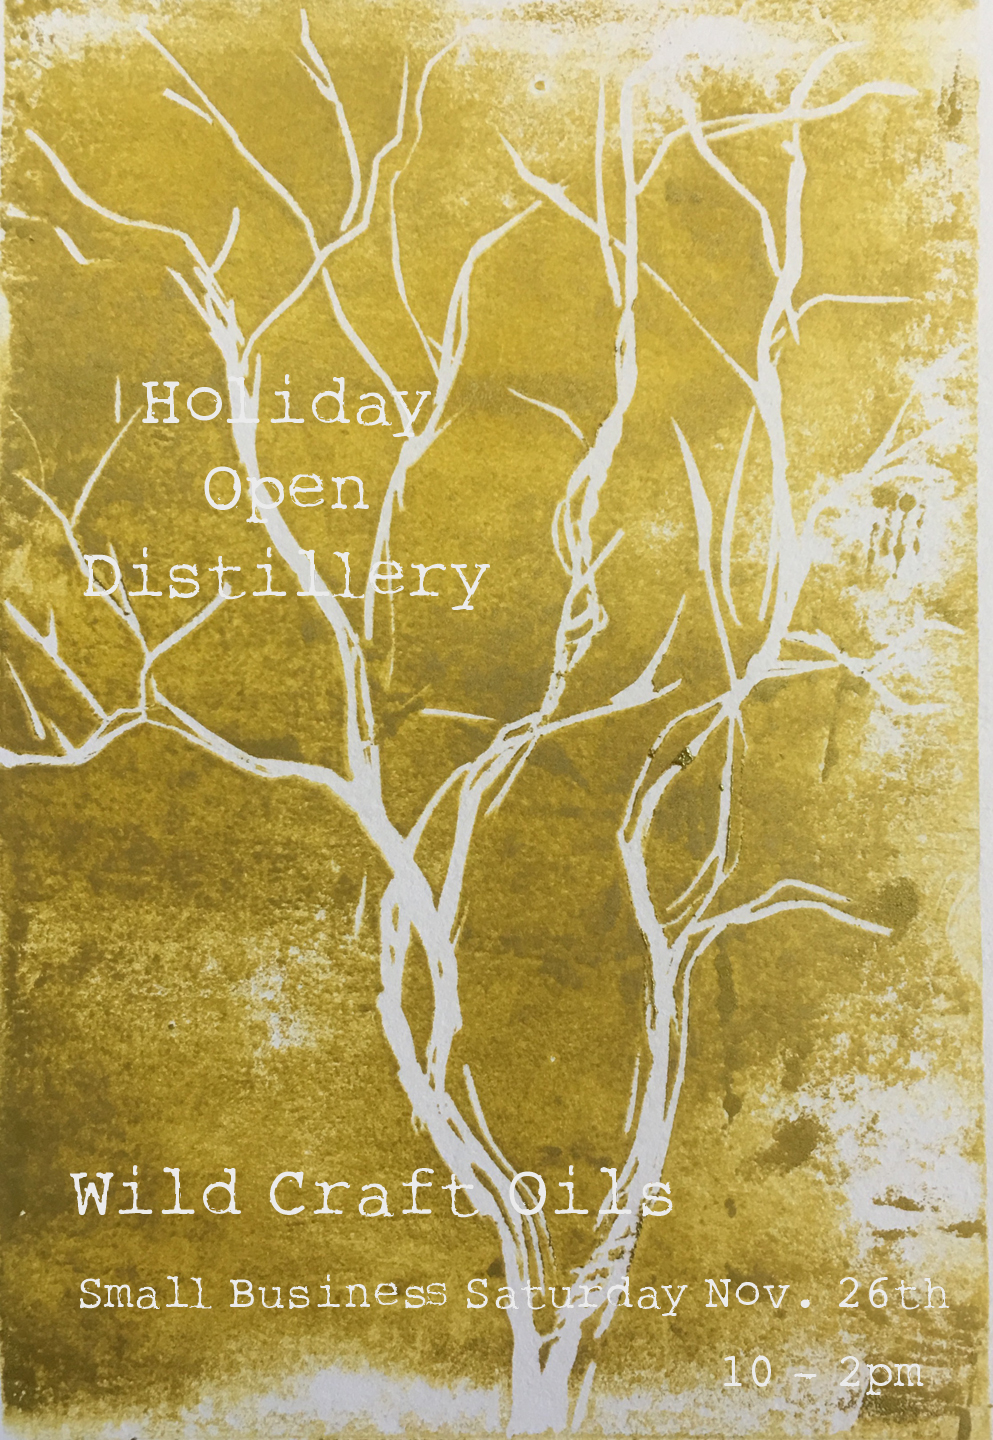 Wild Craft Oils - Holiday Open Distillery